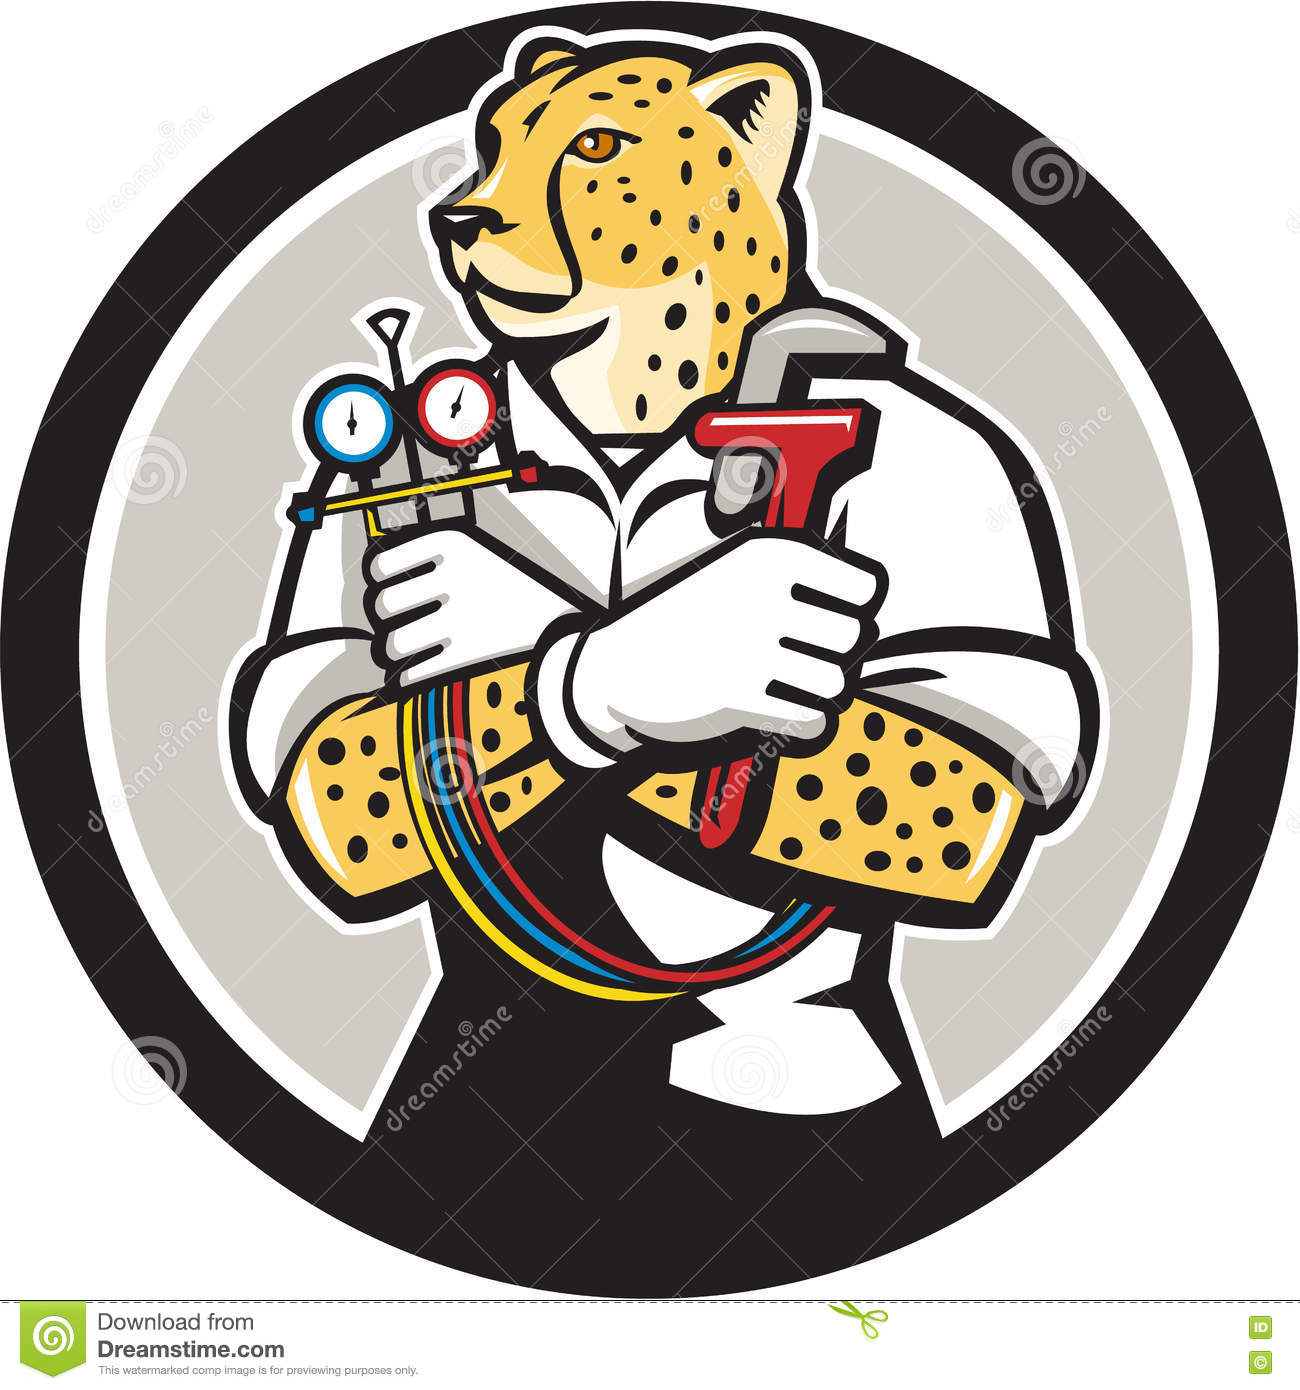 Cheetah Heating Specialist Circle Cartoon Stock Illustration.